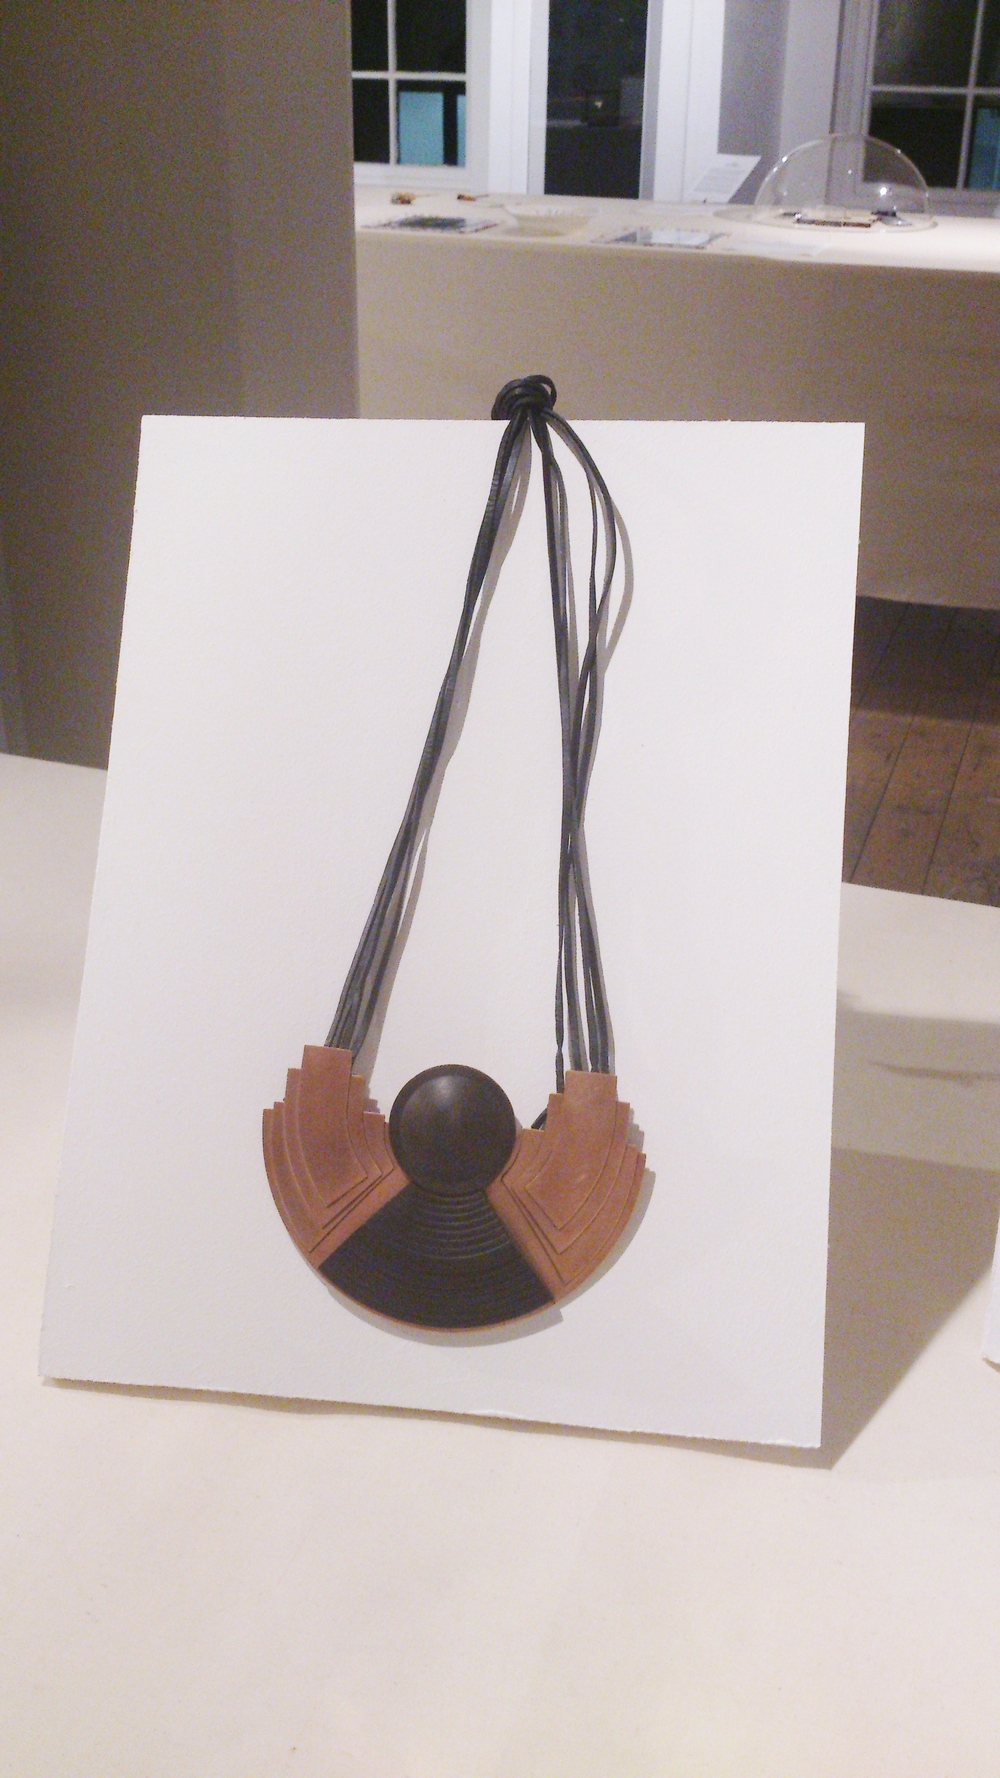 simone brewster necklace aram.jpg